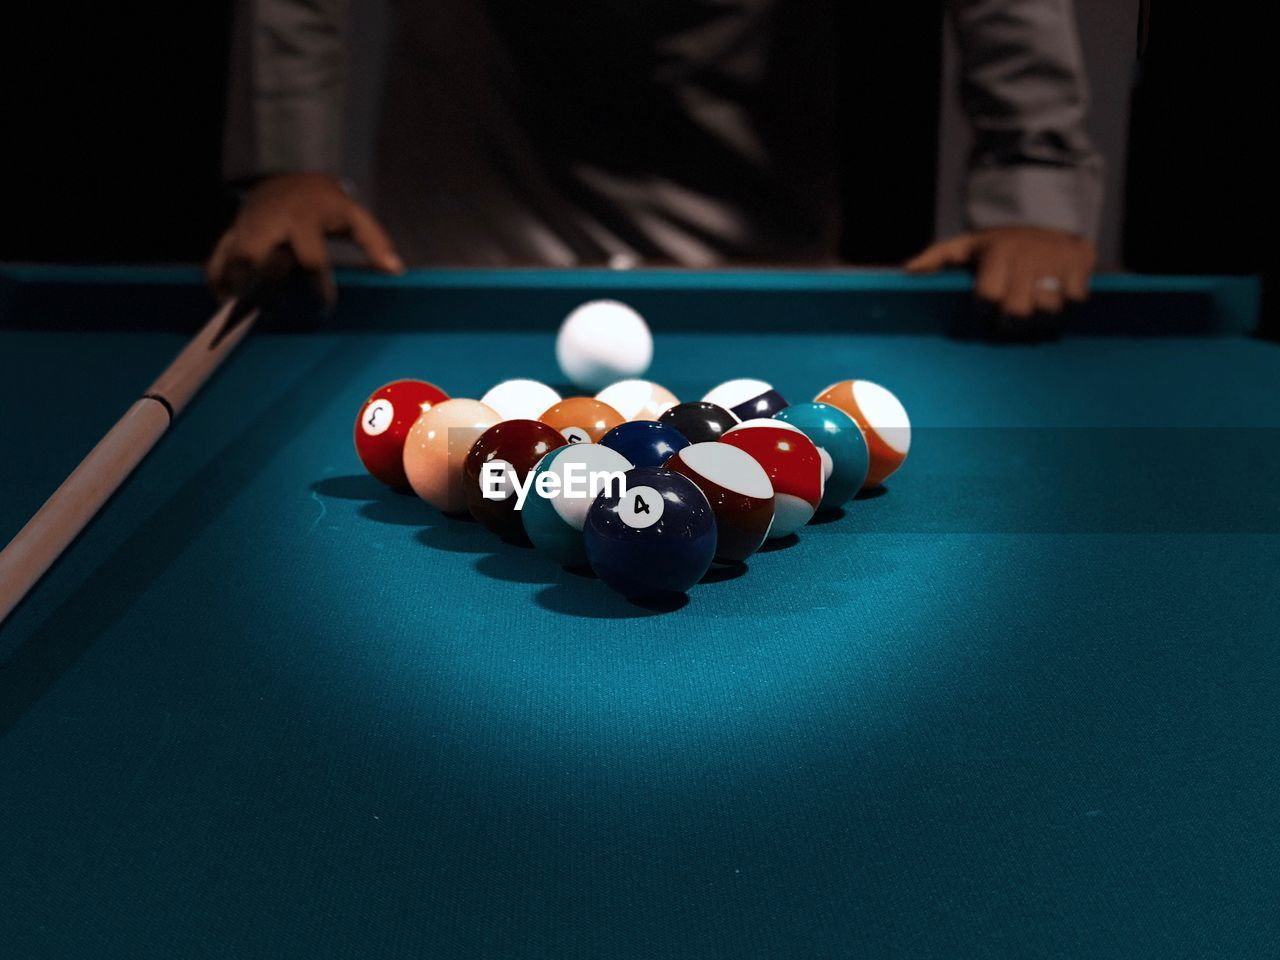 sport, pool ball, pool table, ball, pool - cue sport, table, leisure activity, one person, snooker, indoors, competition, real people, playing, leisure games, pool cue, human hand, relaxation, hand, accuracy, men, skill, nightlife